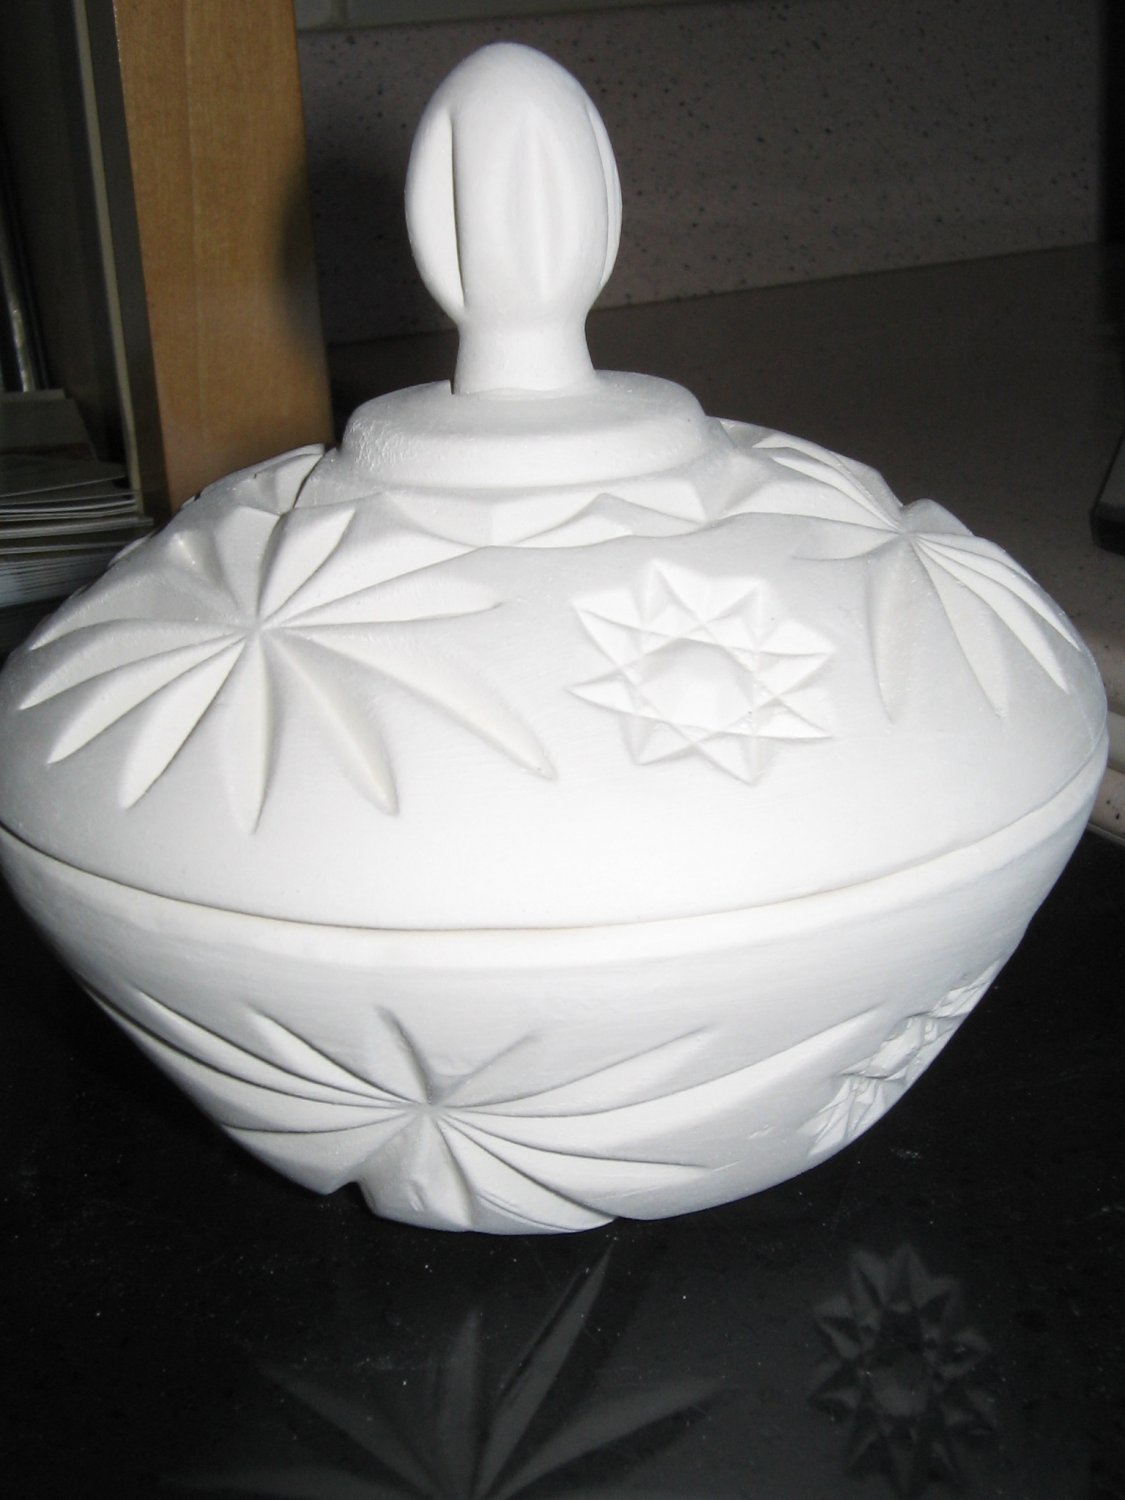 Ready To Paint Candy Dish U Paint Ceramic Bisque